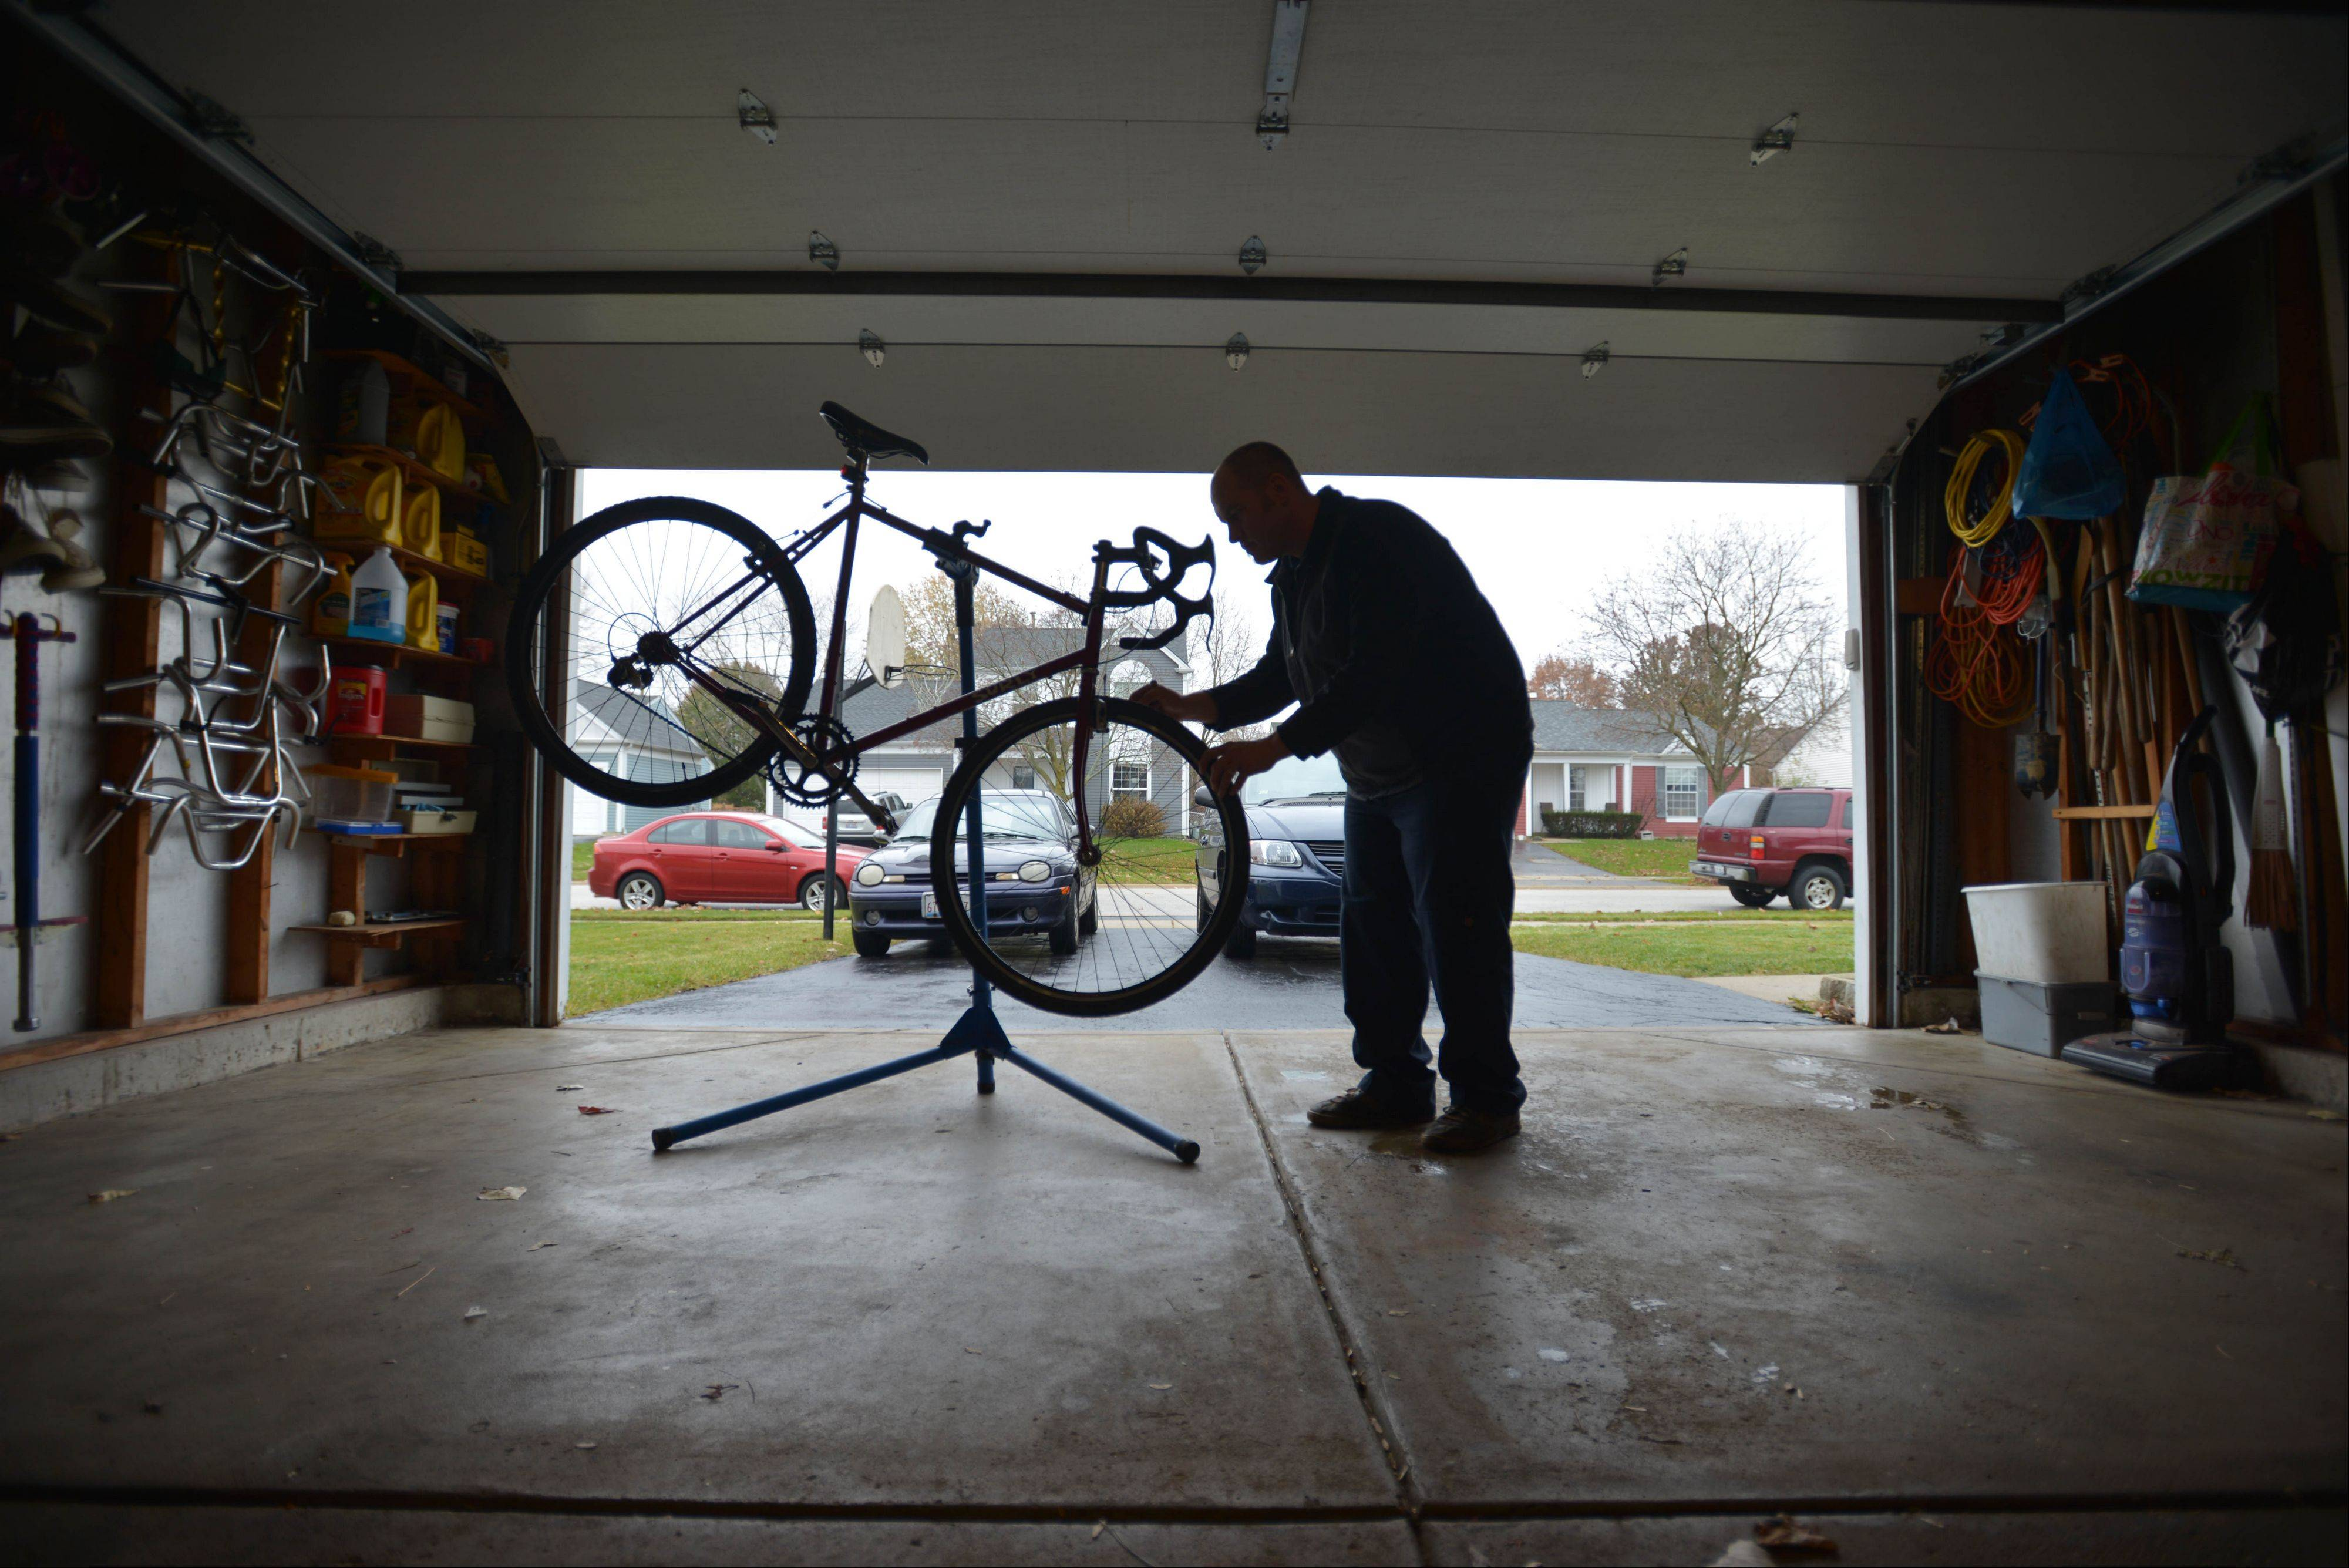 Brian Wroblewski, of Aurora, works on one of the six bikes in his garage Saturday afternoon. He was going to go for a ride, but it was raining.